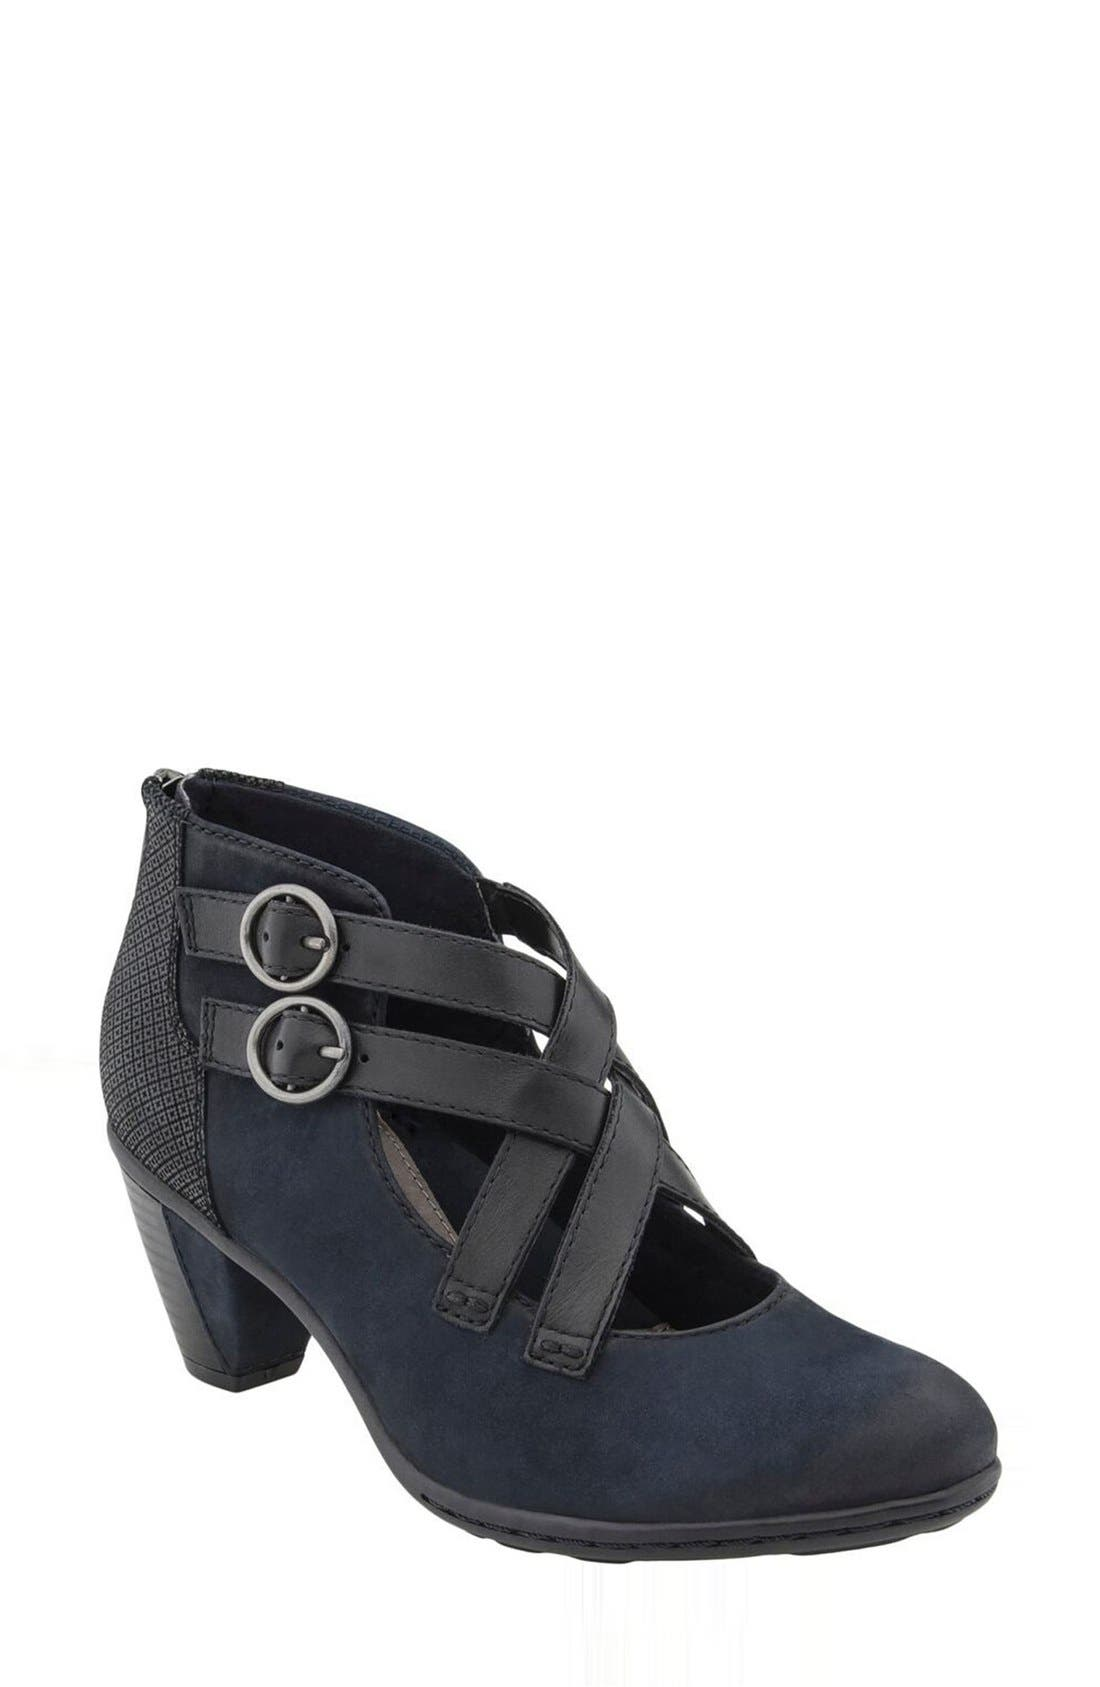 'Amber' Buckle Bootie,                         Main,                         color, Navy Nubuck Leather